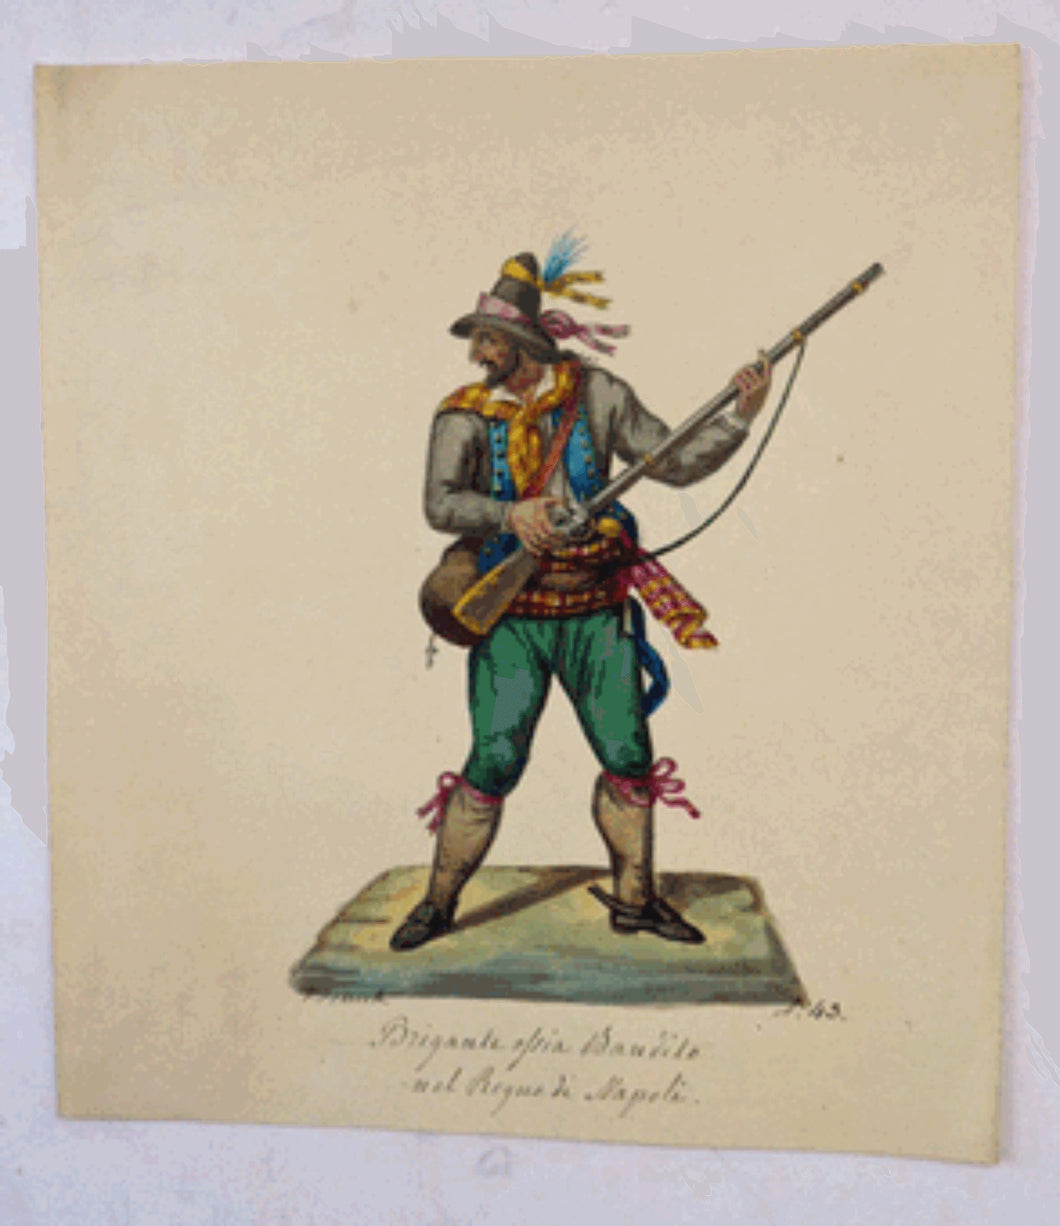 MALTESE ART. Early 19th Century Watercolour Costume Studies by Vincenzo Feneck. Neapolitan Bandit Brandishing a Musket